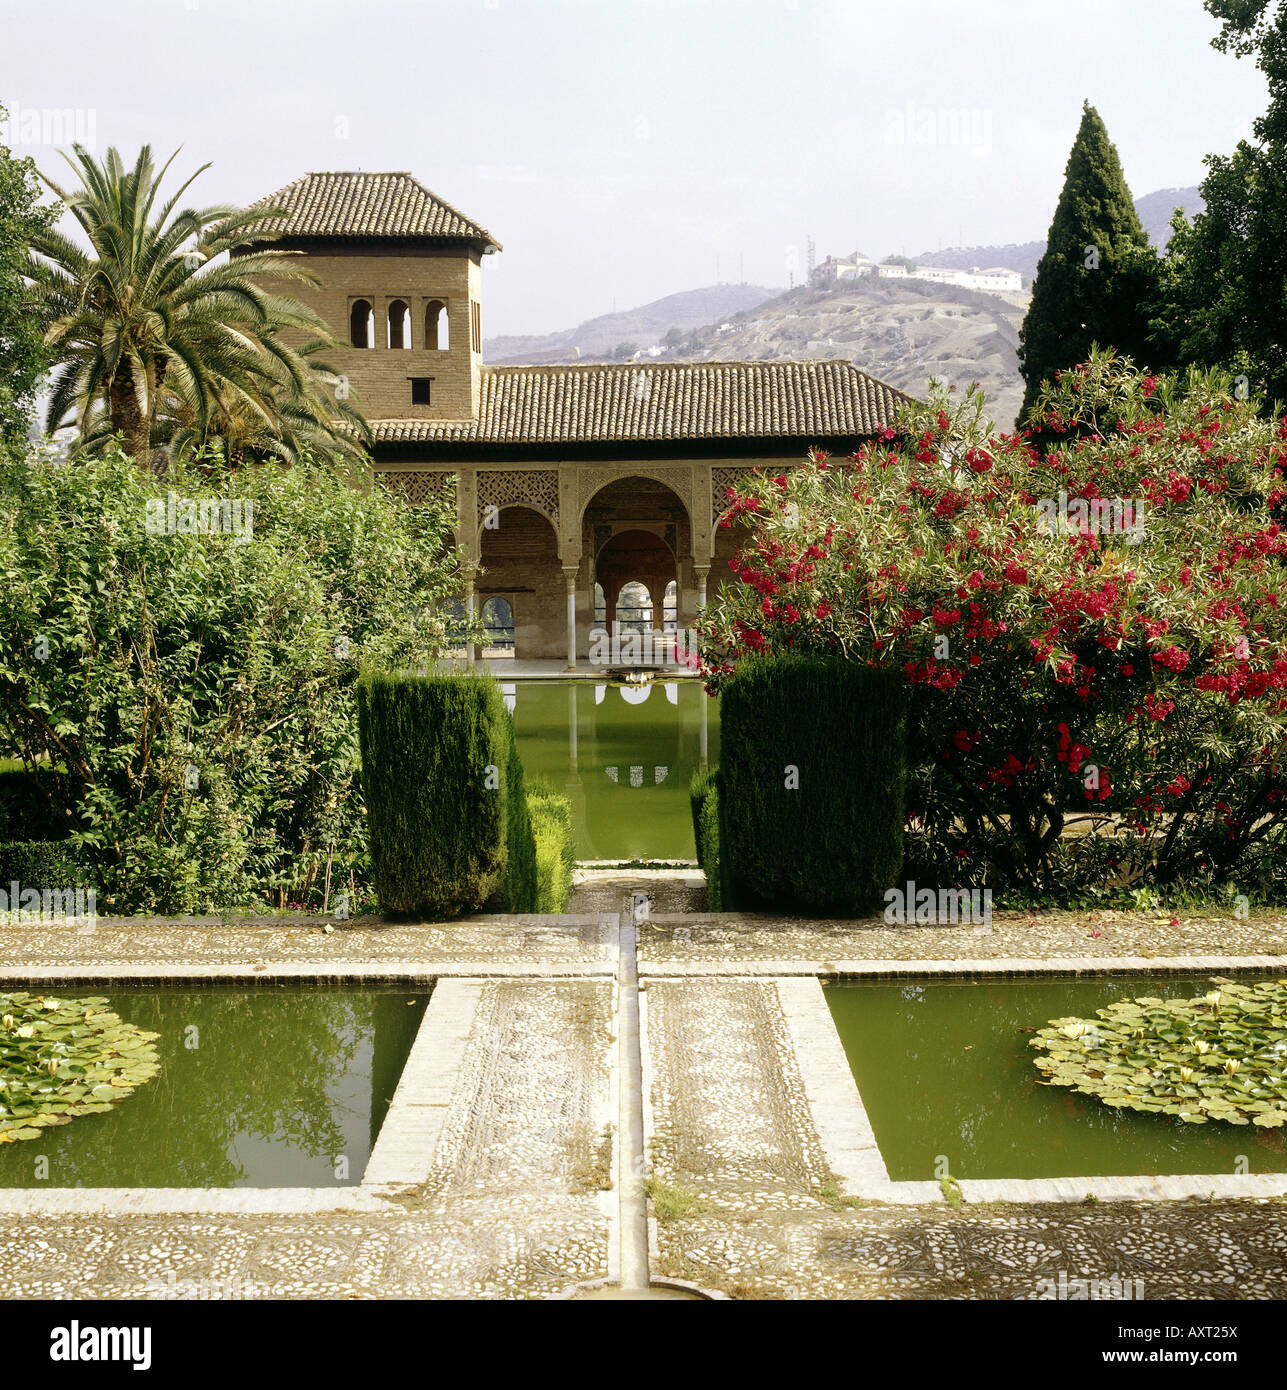 geography / travel, Spain, Granada, Alhambra, Torre de las Damas (tower of the women) with gardens, , Additional - Stock Image